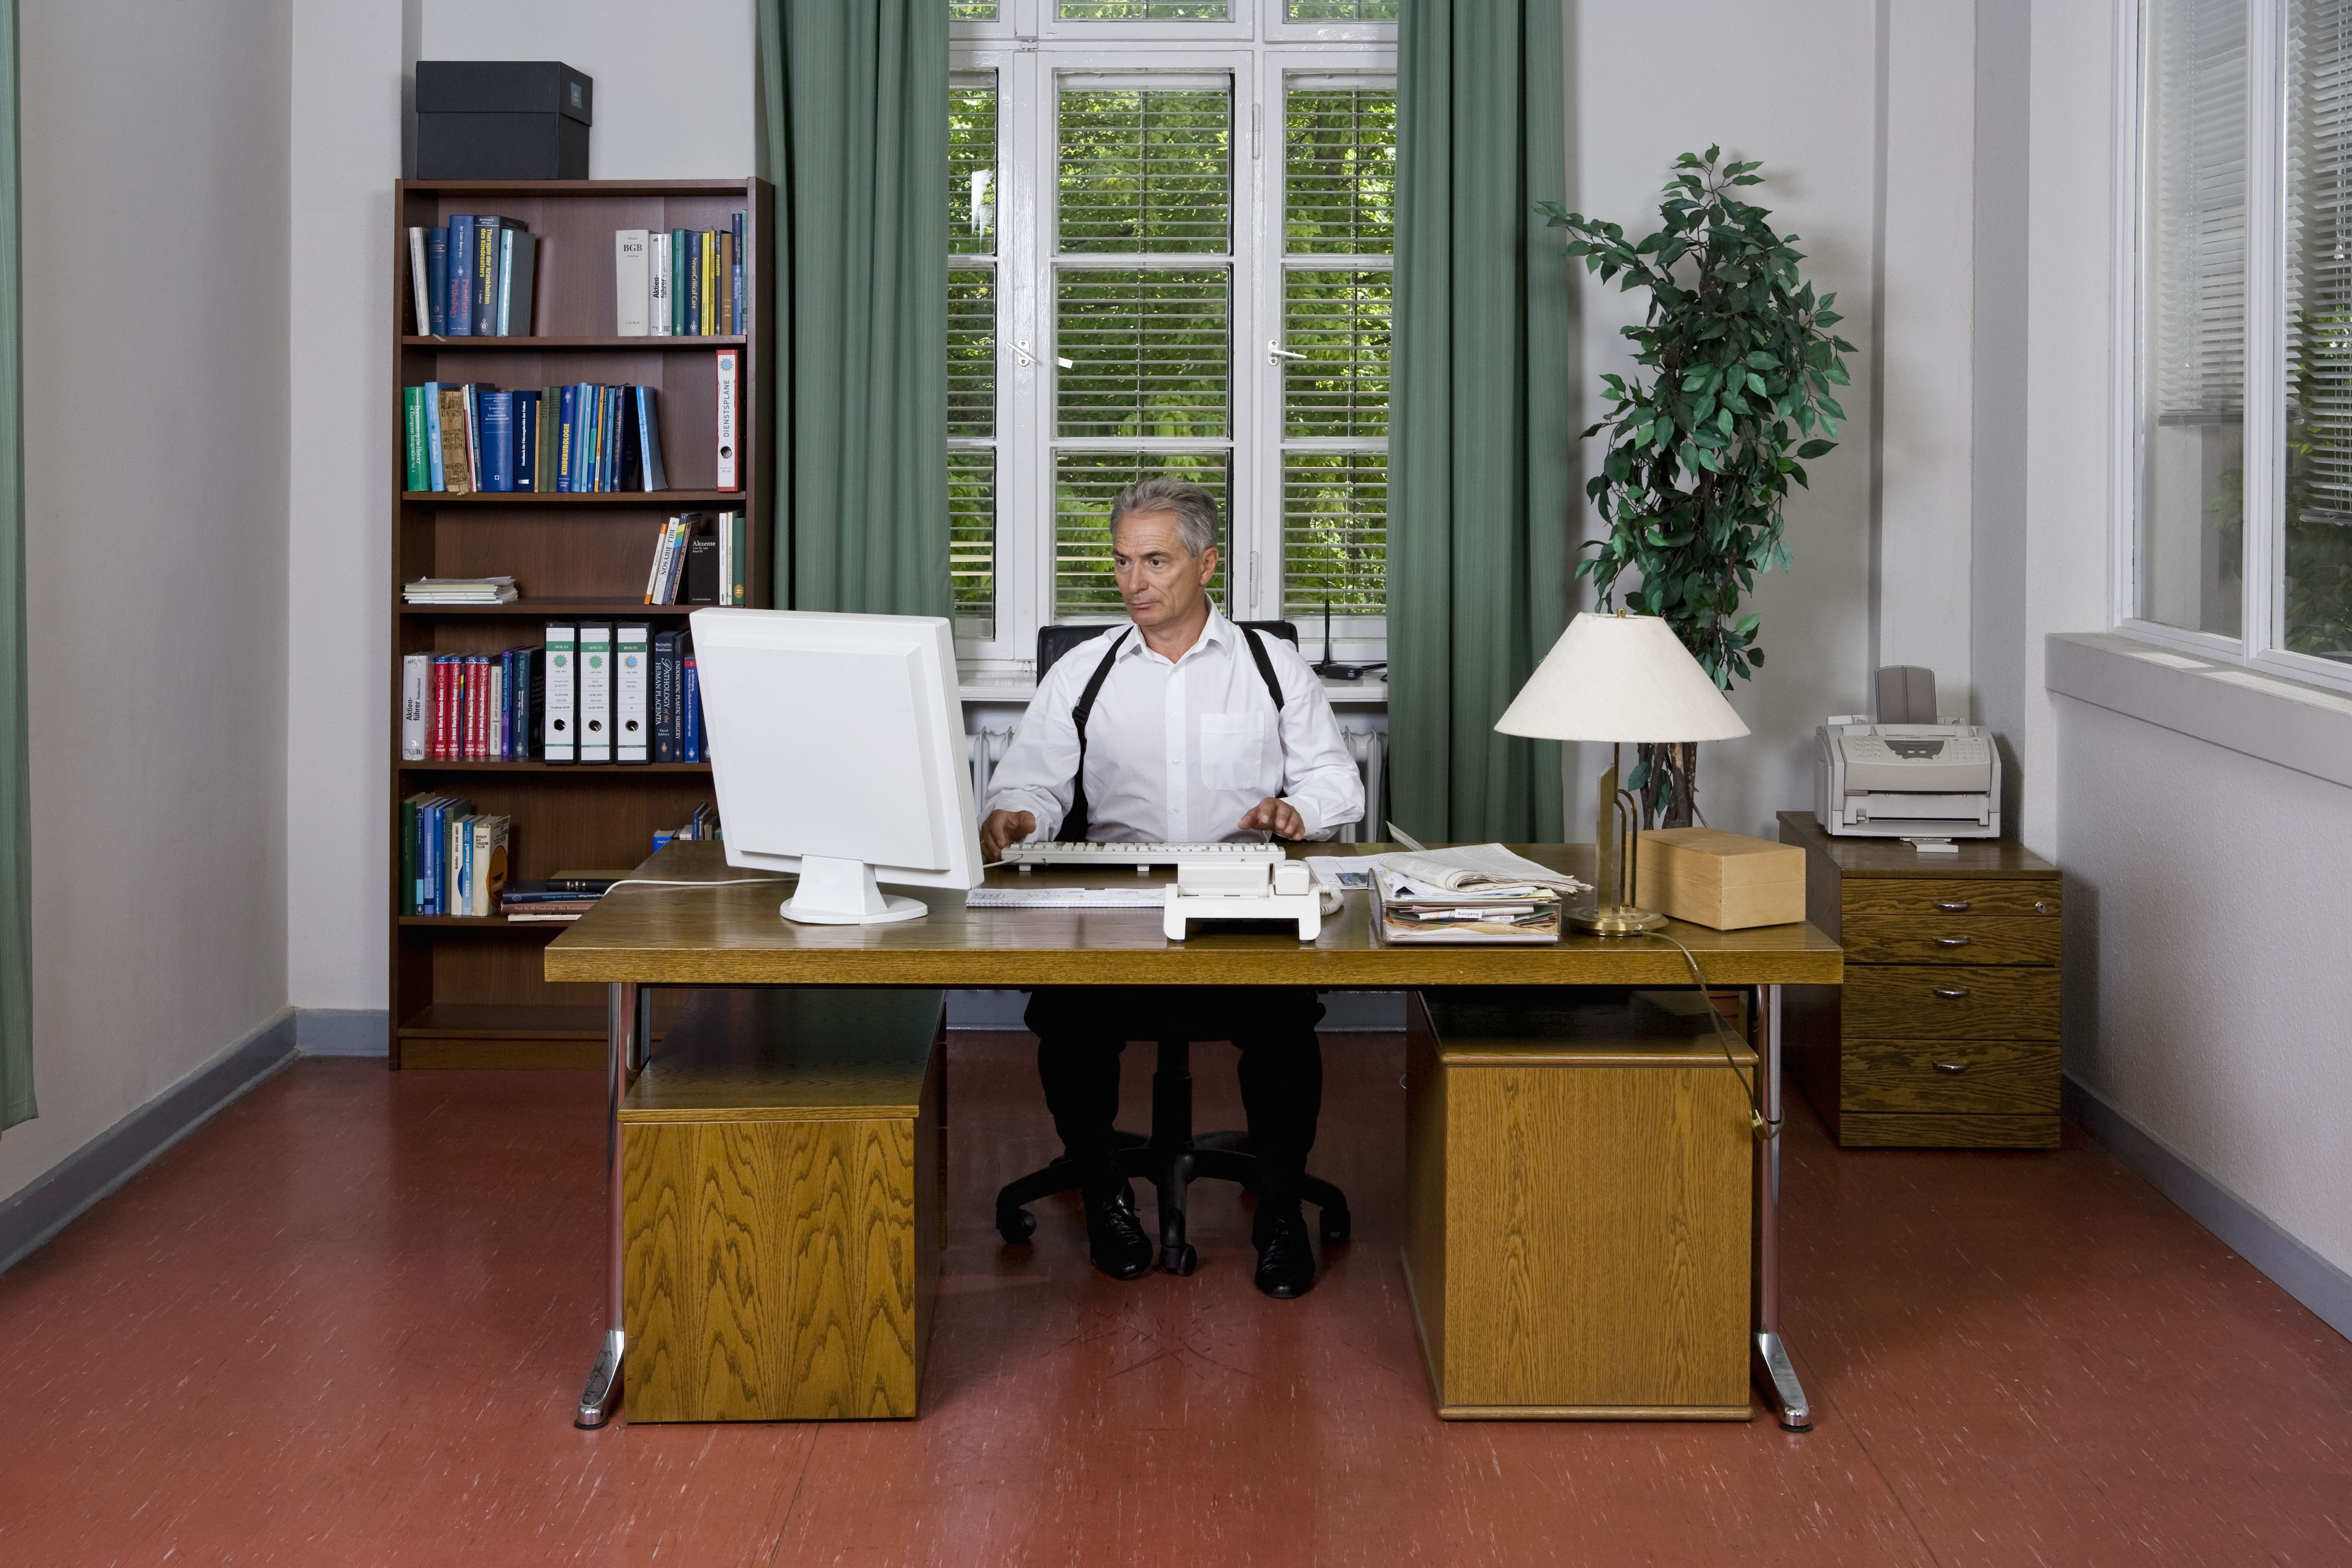 A police officer doing paperwork in an office